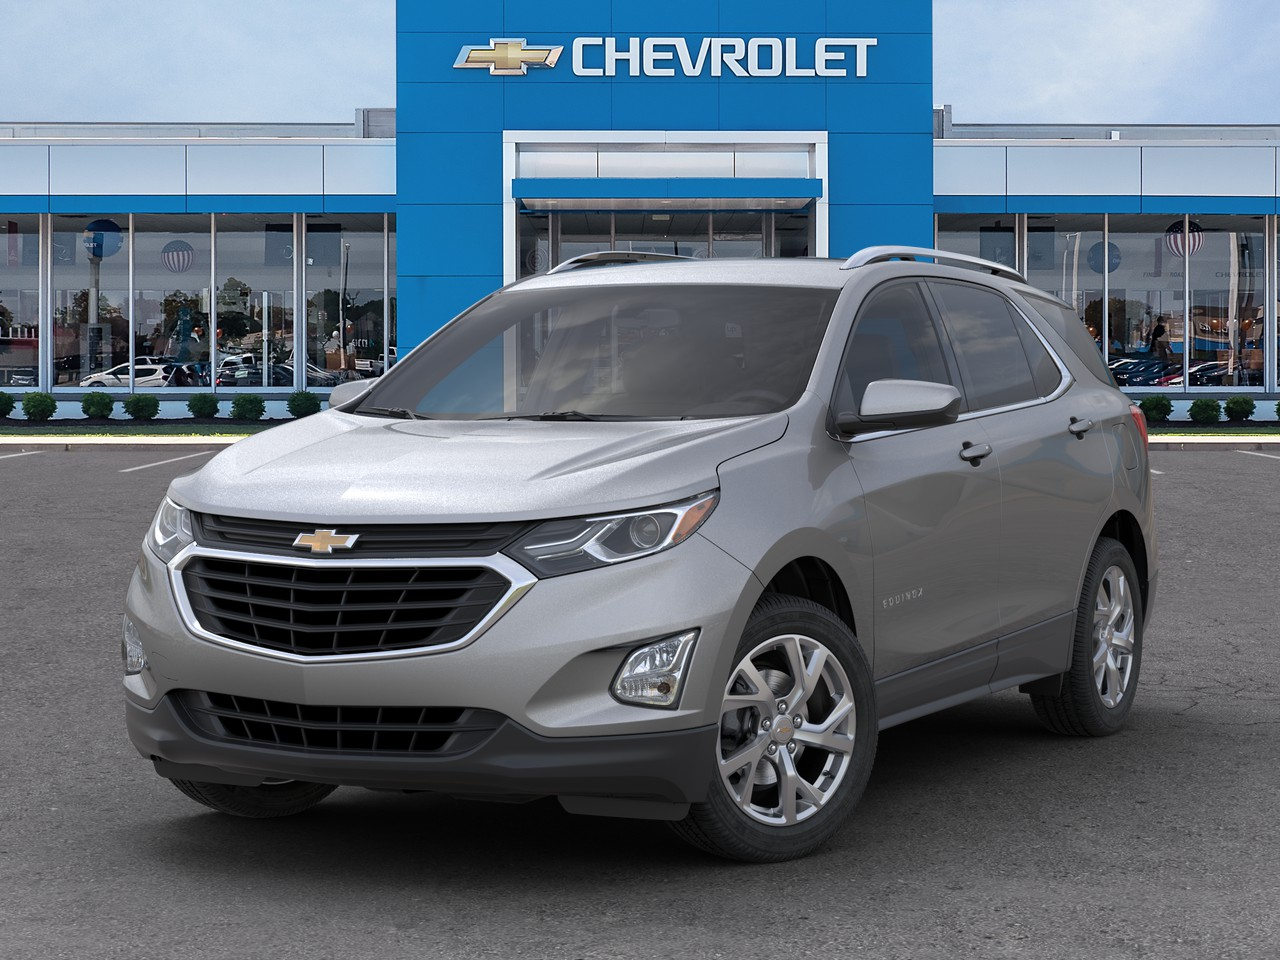 New 2020 Chevrolet Equinox LT FRONT WHEEL DRIVE SUVs